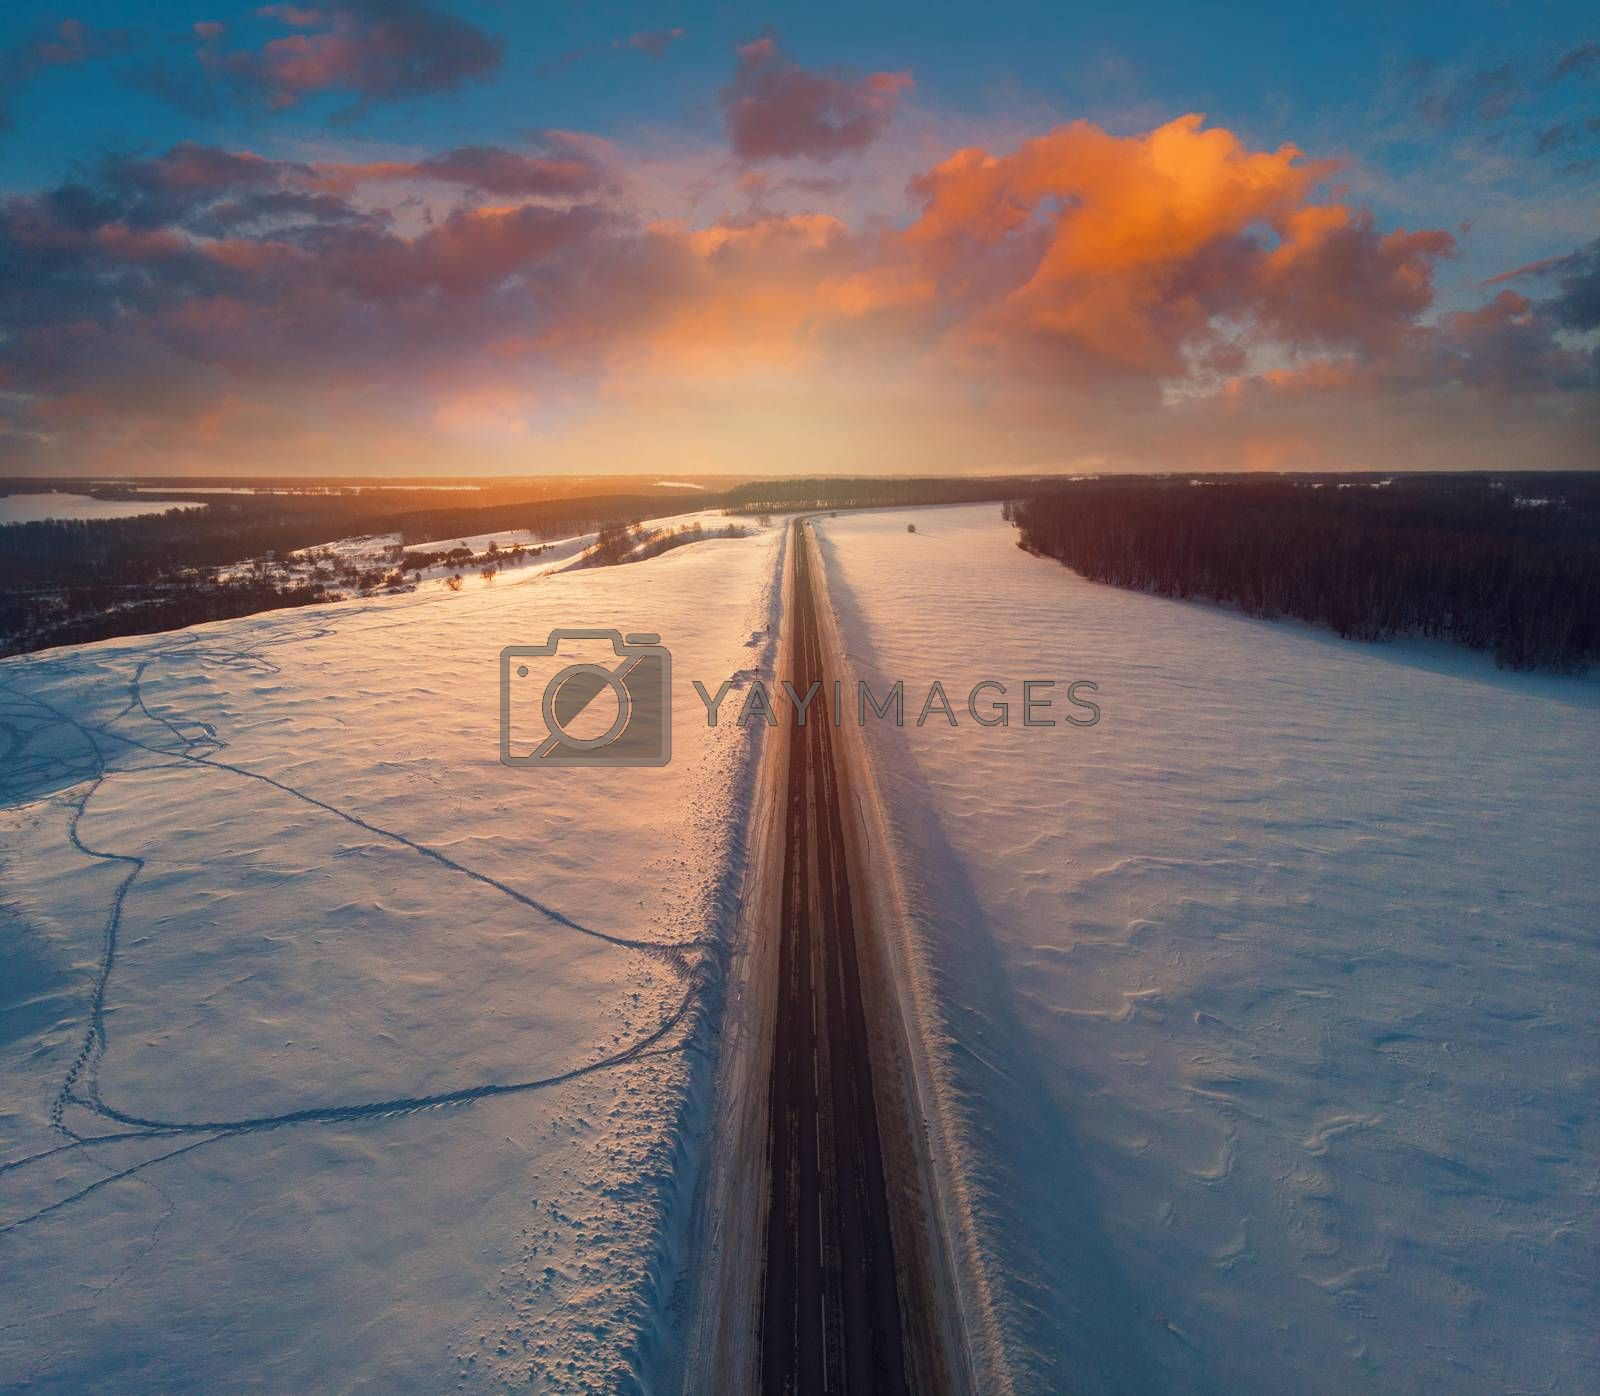 Royalty free image of Aerial view of a winter road by rusak